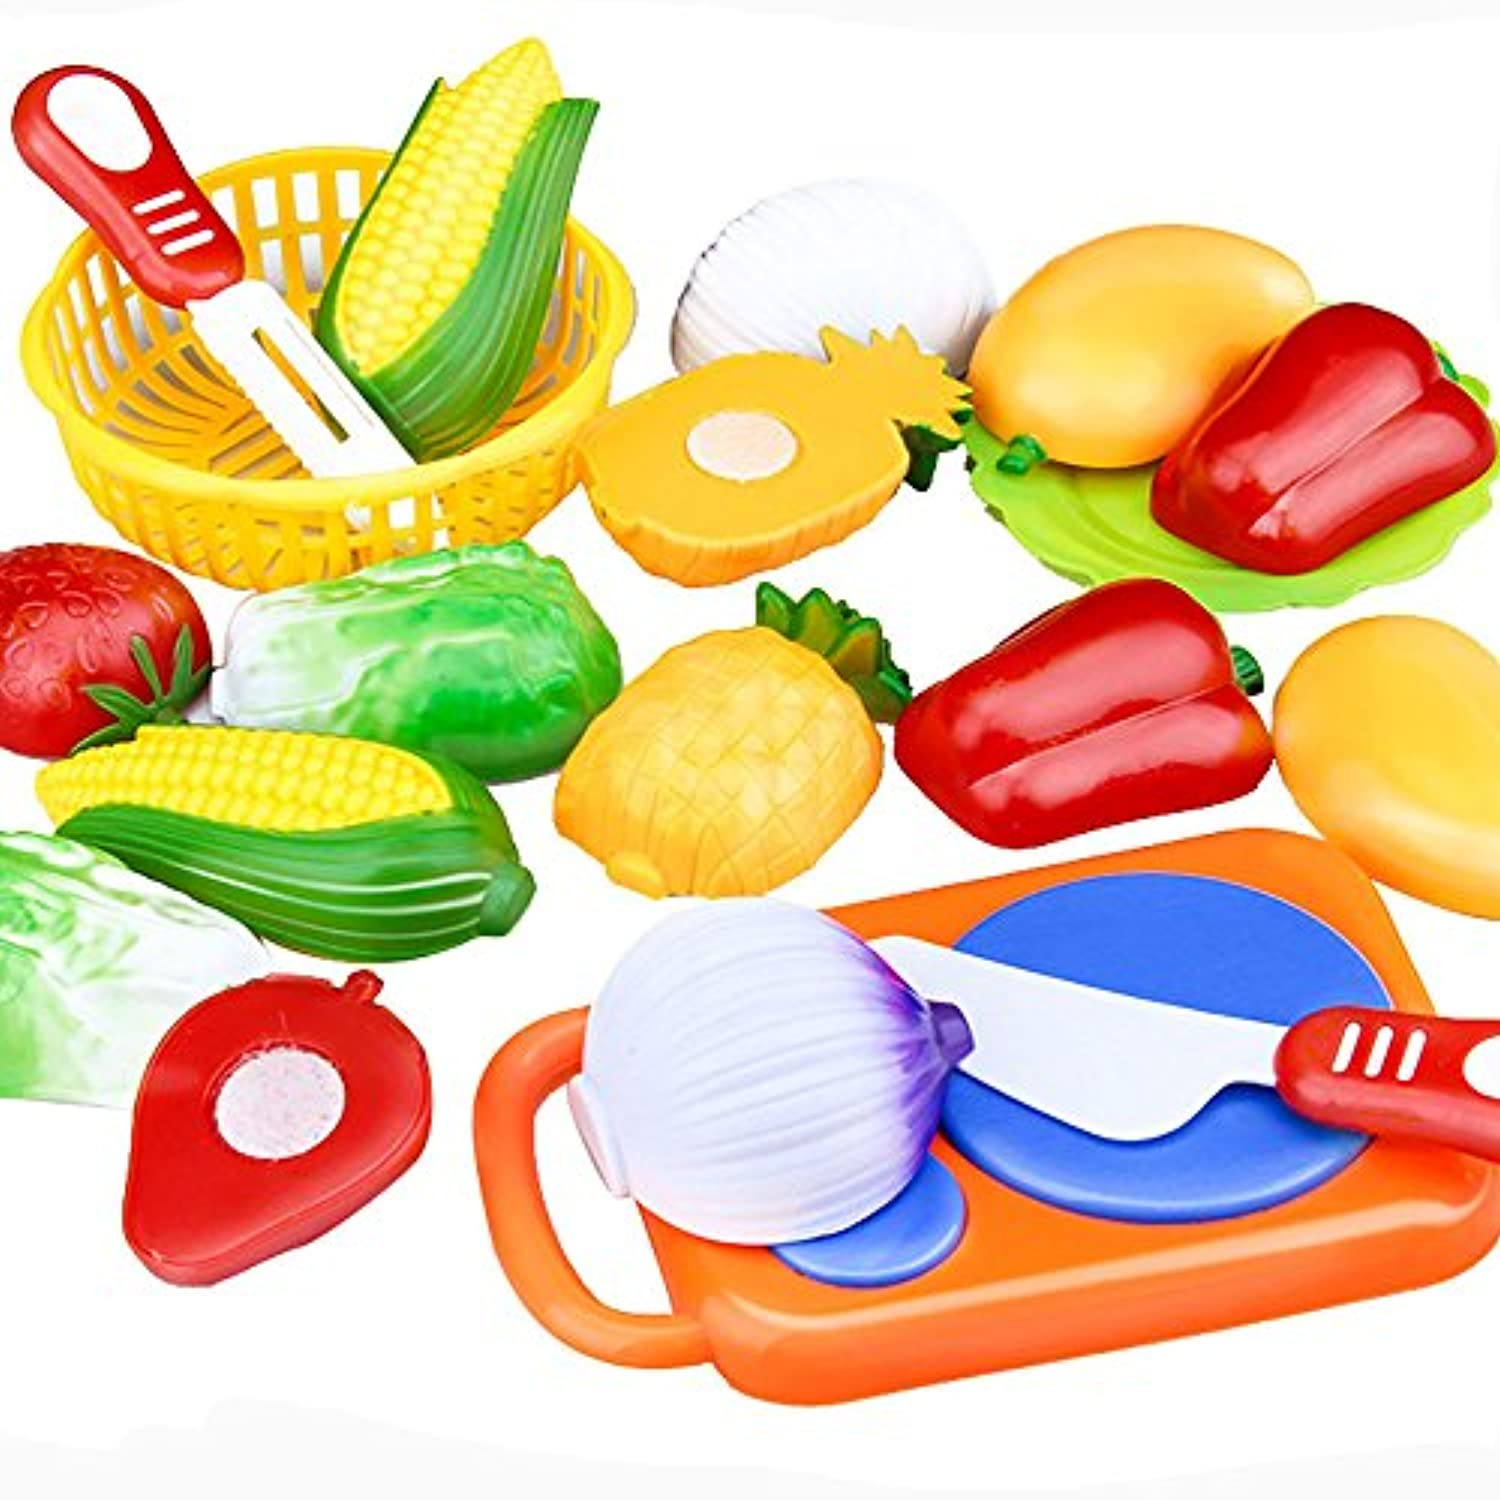 baomabao子供Kid 12pc Cutting Fruit Vegetable Pretend Play教育玩具